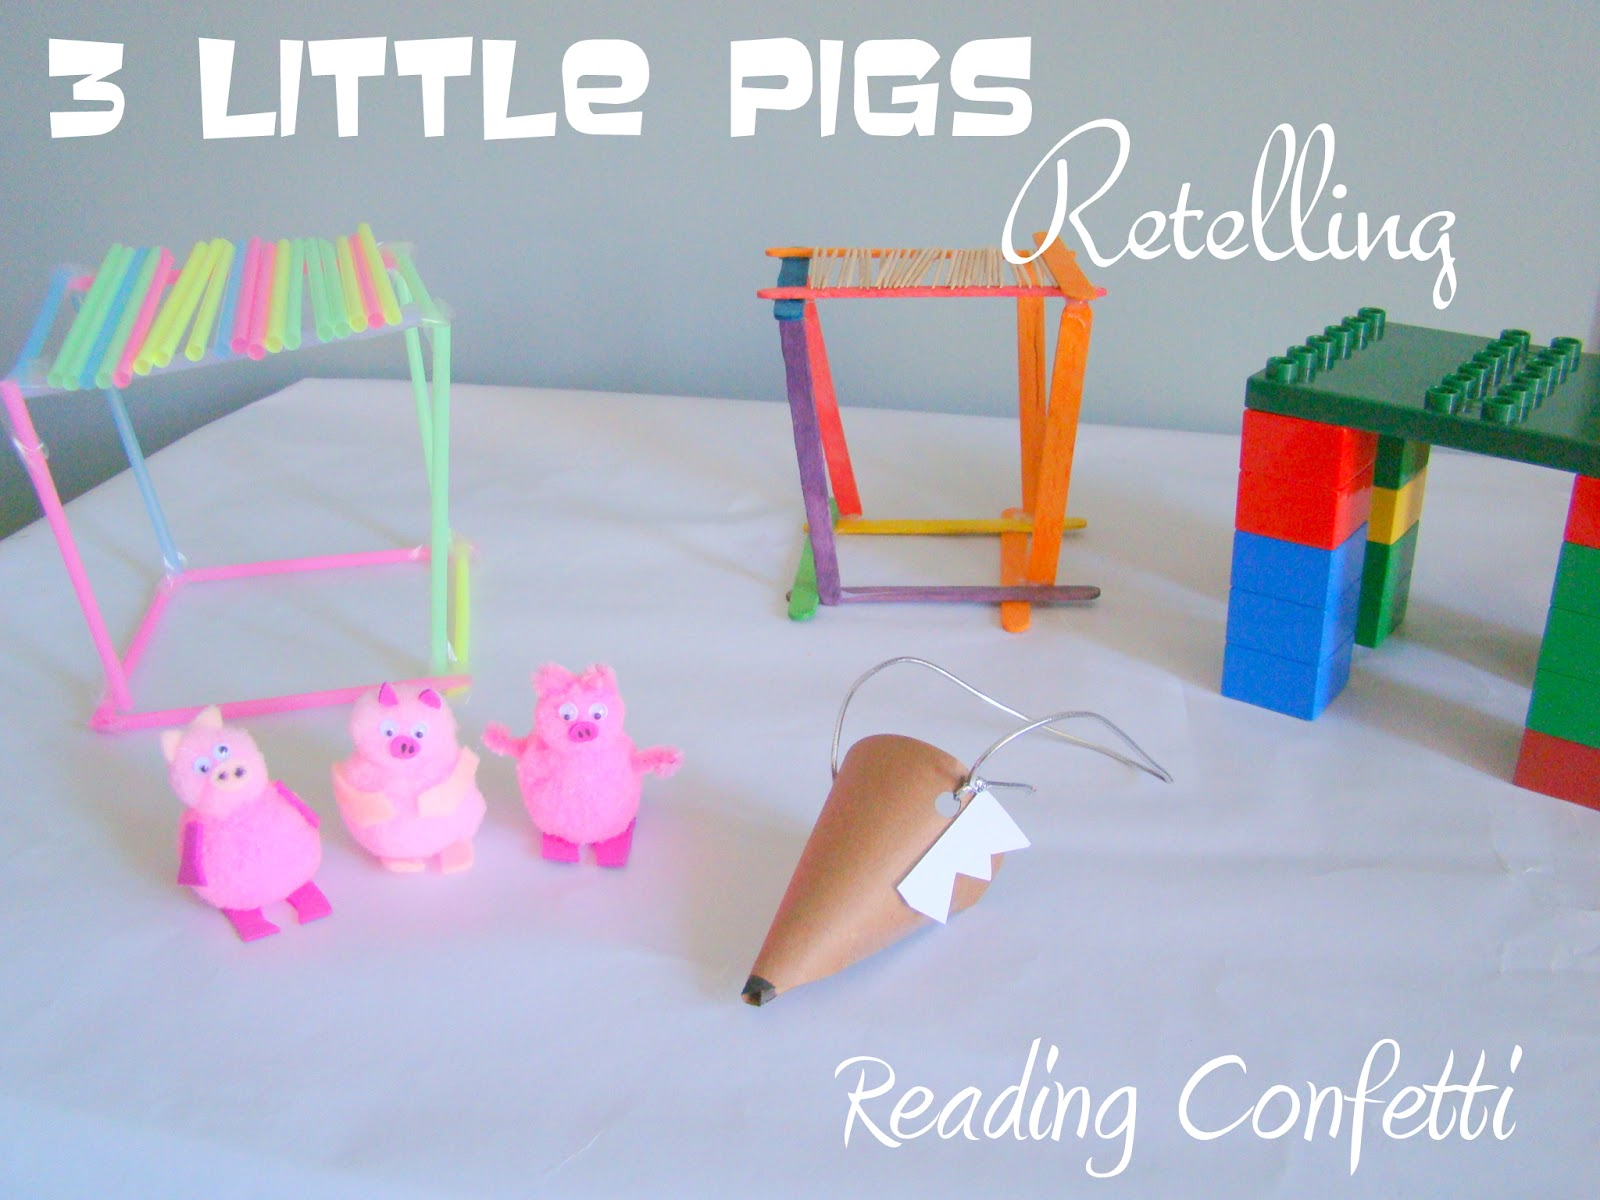 The 3 Little Pigs Retelling Reading Confetti